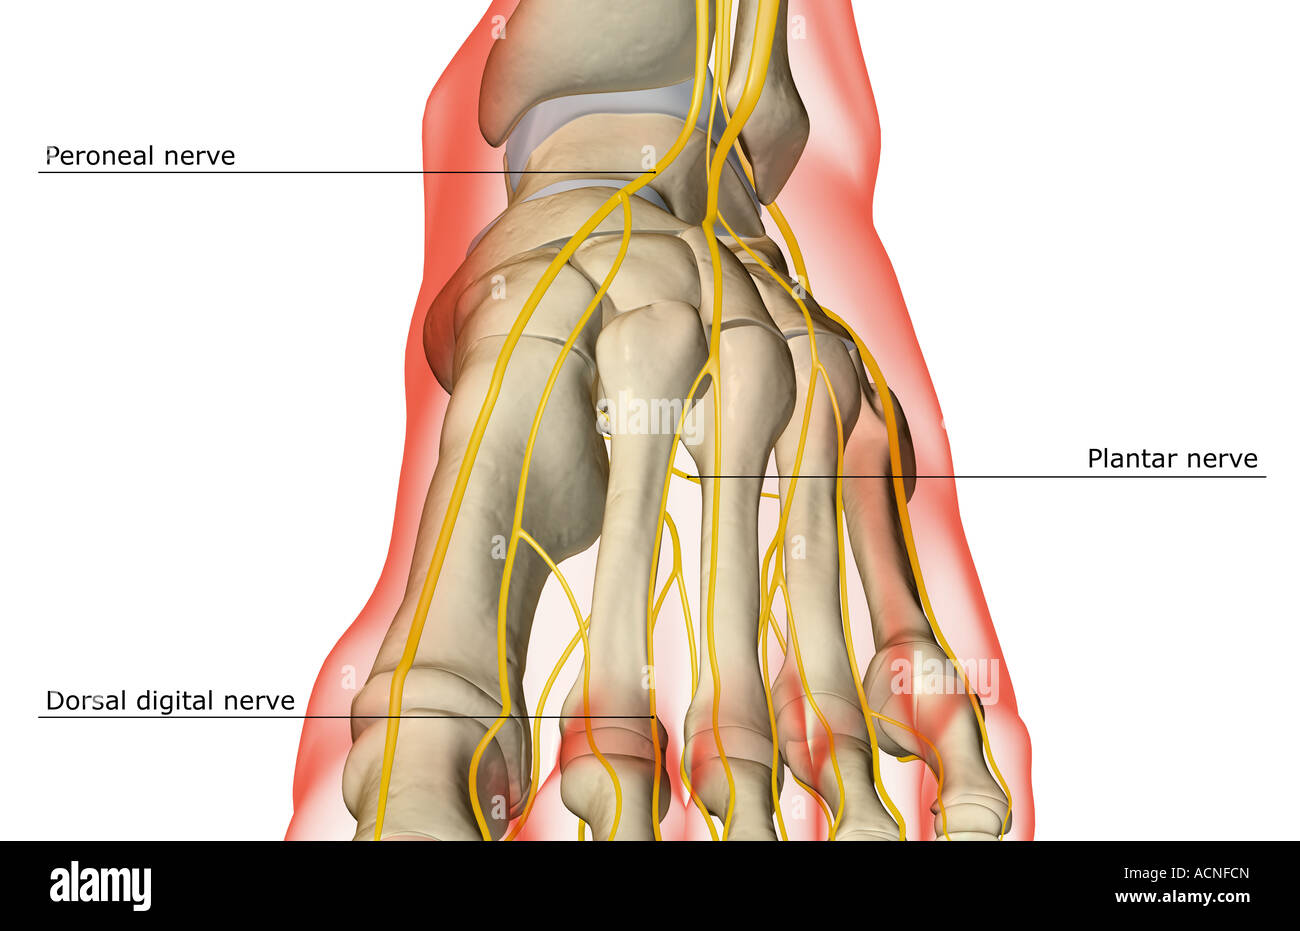 The nerves of the foot Stock Photo: 13198340 - Alamy